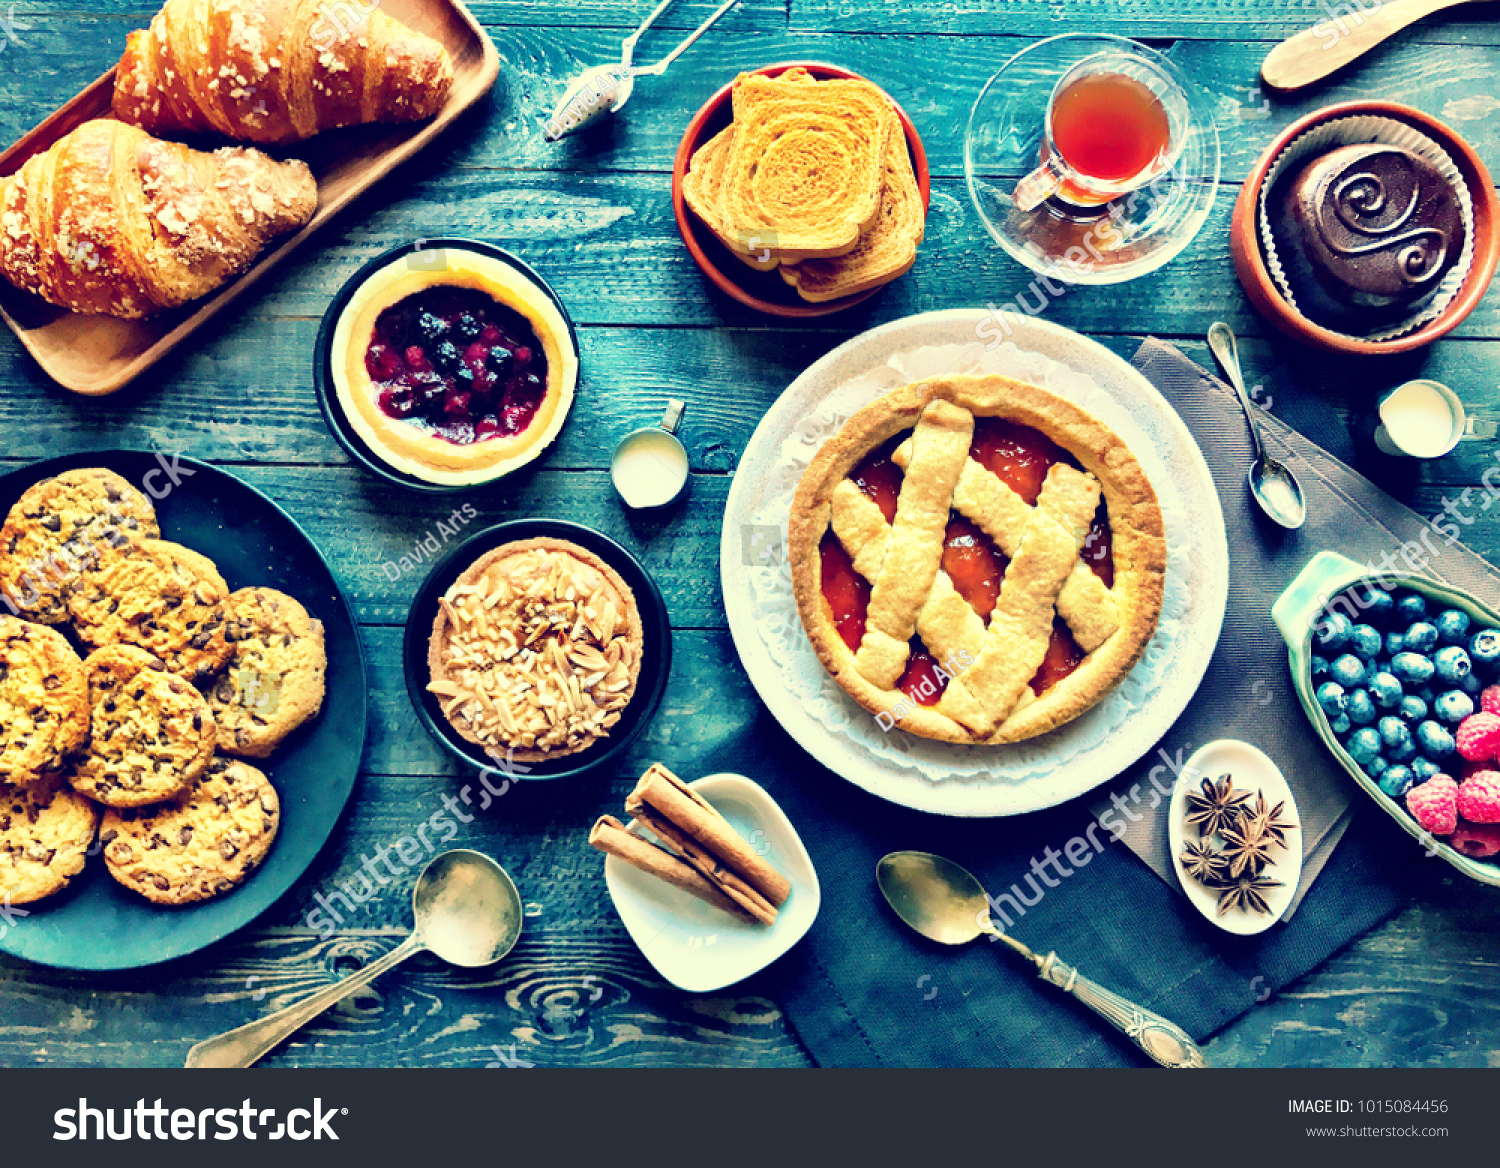 Top view of a wood table full of cakes, spices and more breakfast classic sweet foods. #1015084456